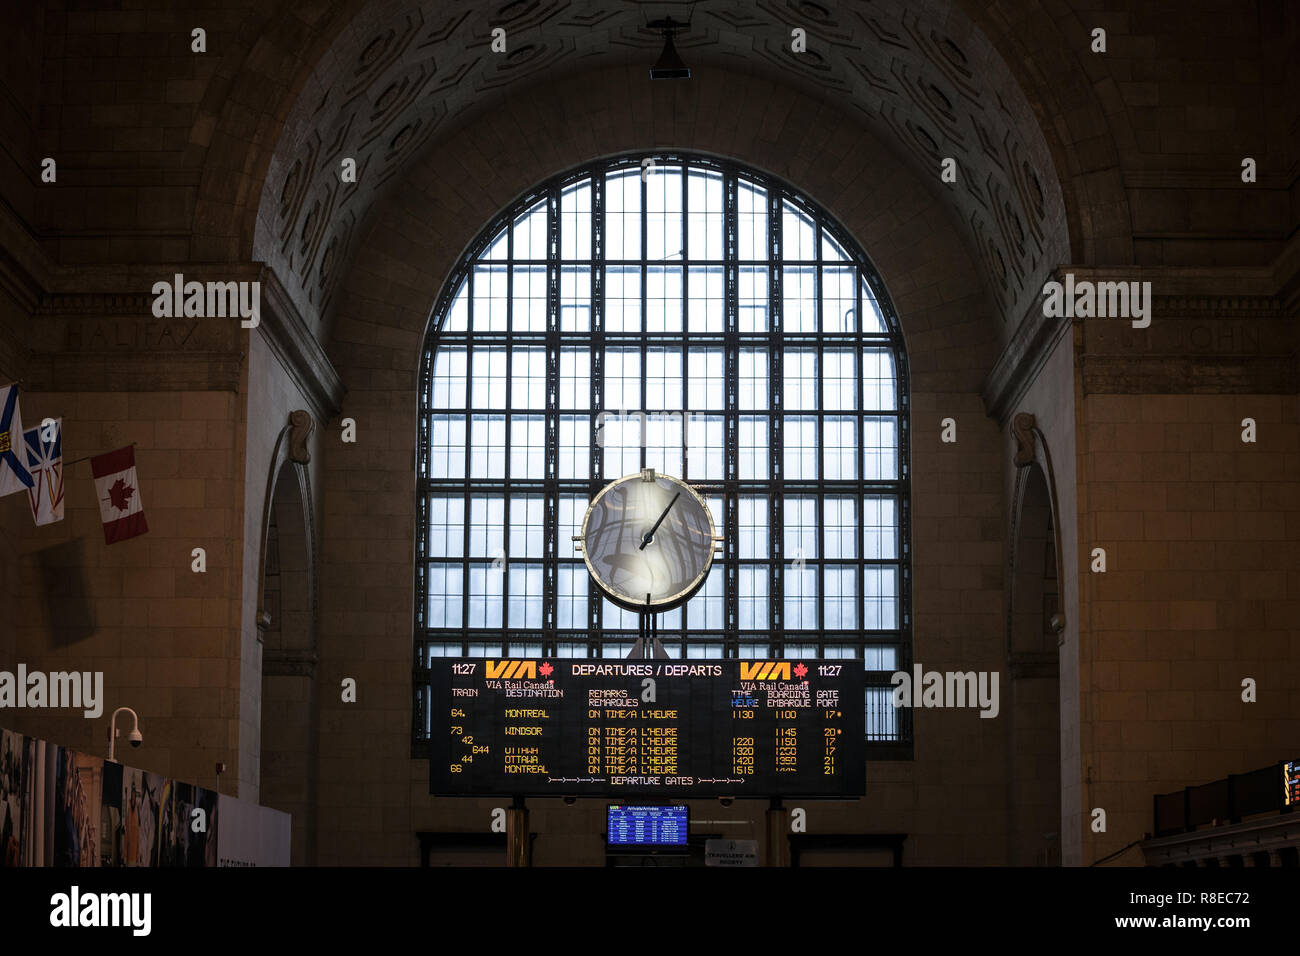 TORONTO, CANADA - NOVEMBER 13, 2018: Toronto main hall with its departures and arrivals board. It is the main railway station for Via Rail in Ontario  - Stock Image